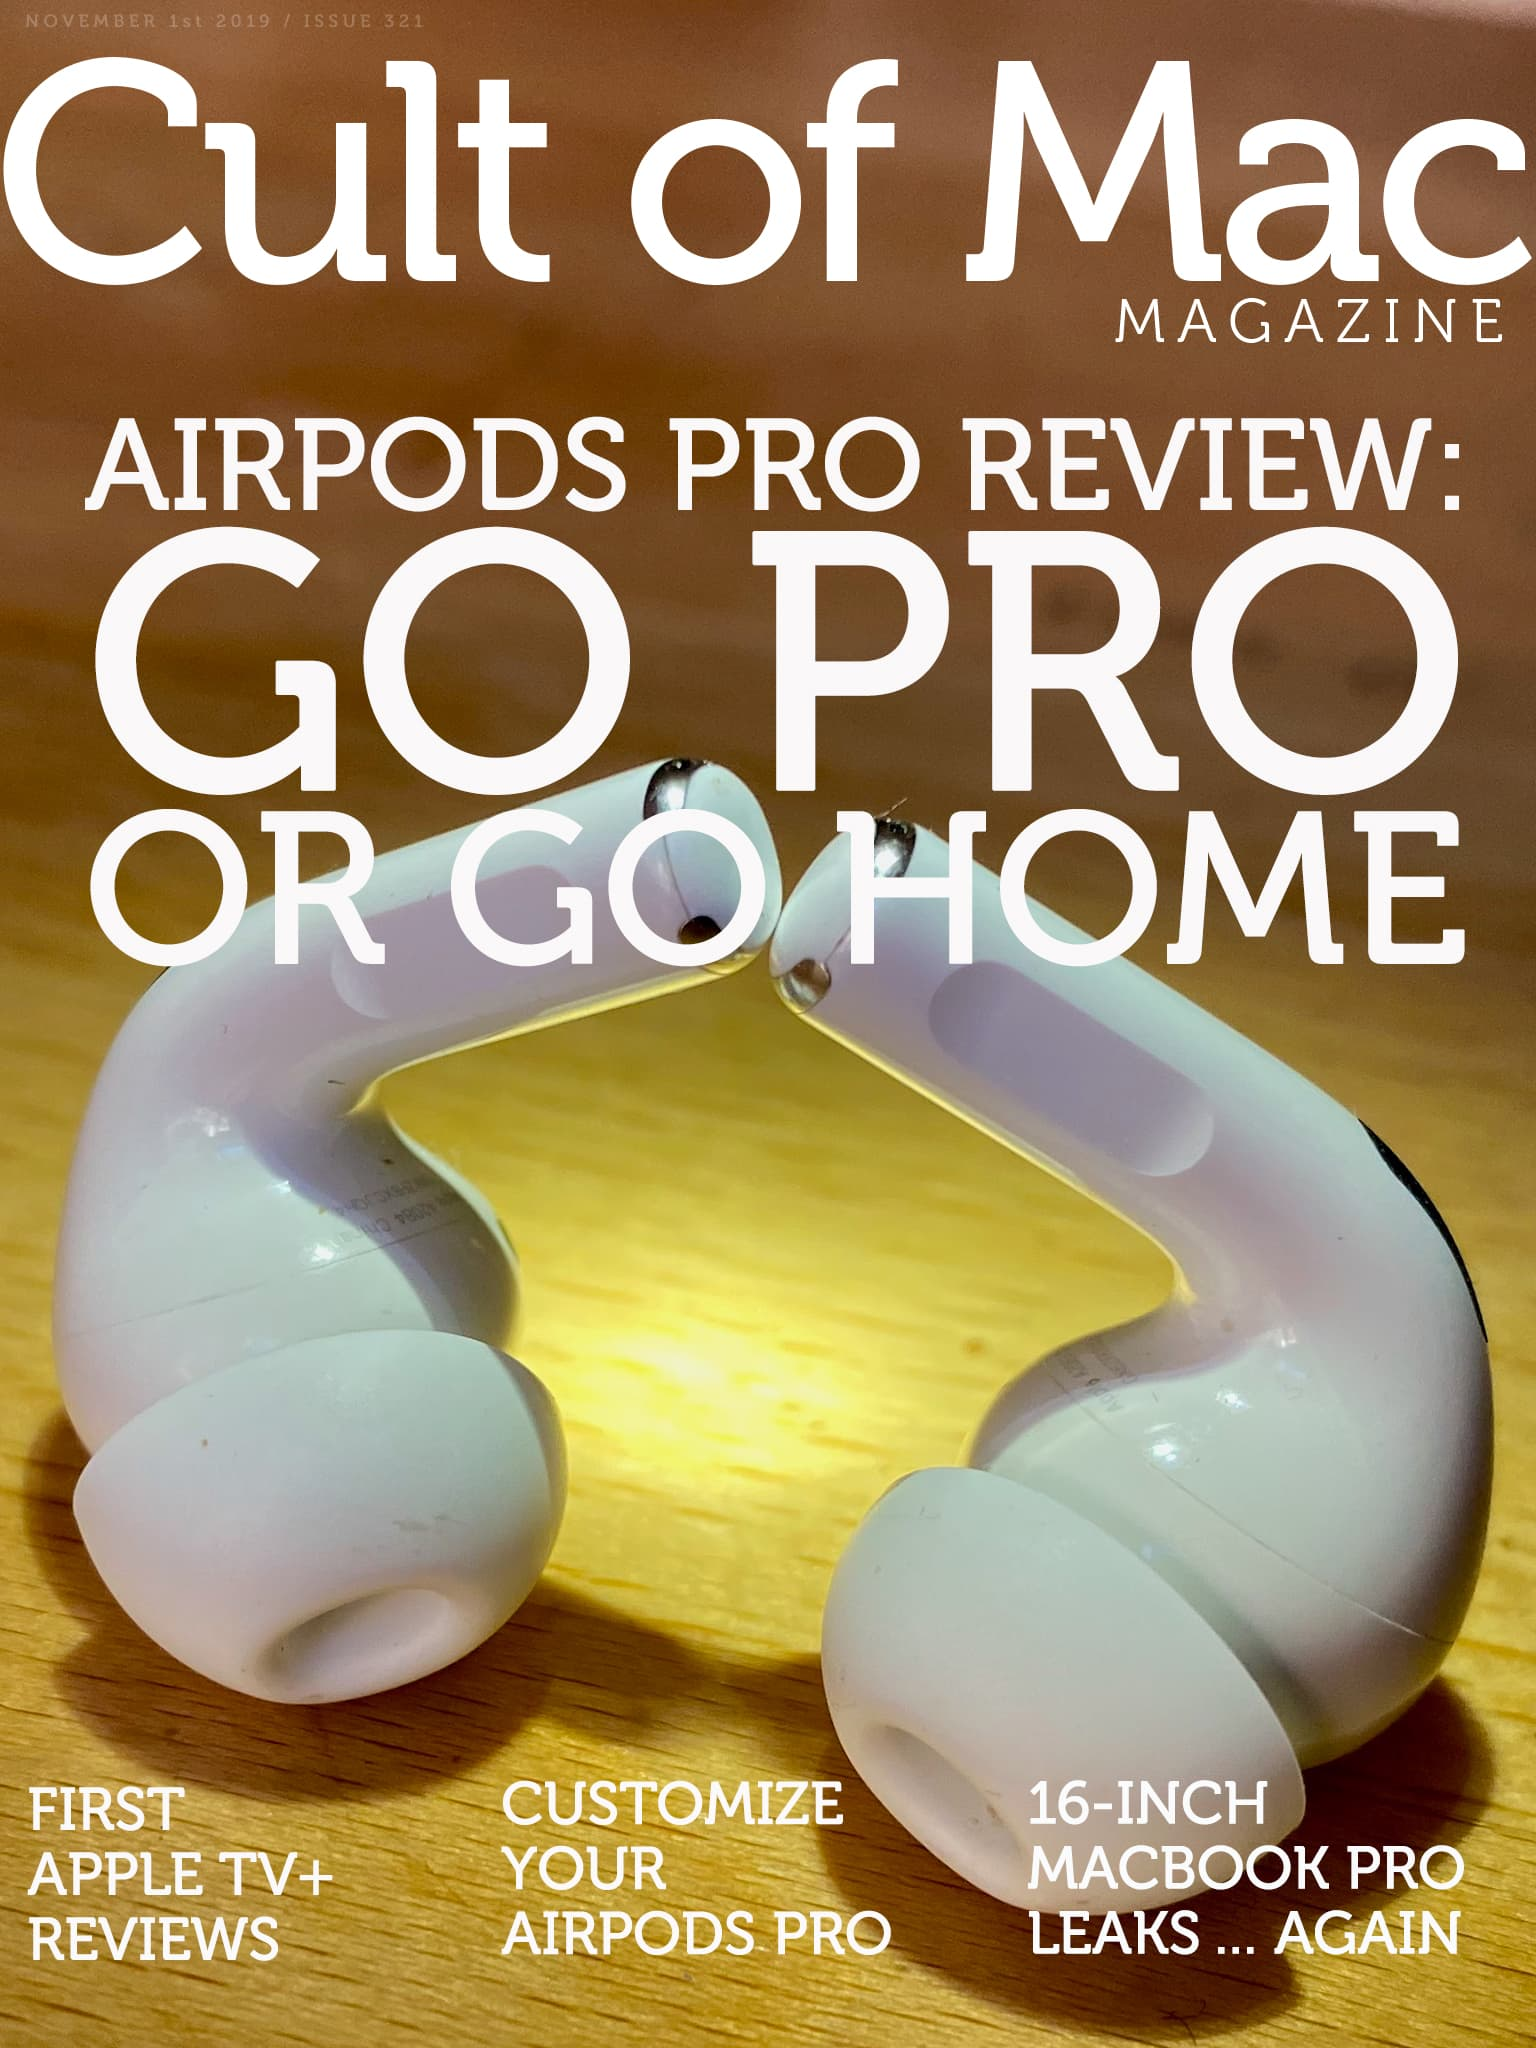 With AirPods Pro, the original AirPods just got far better.